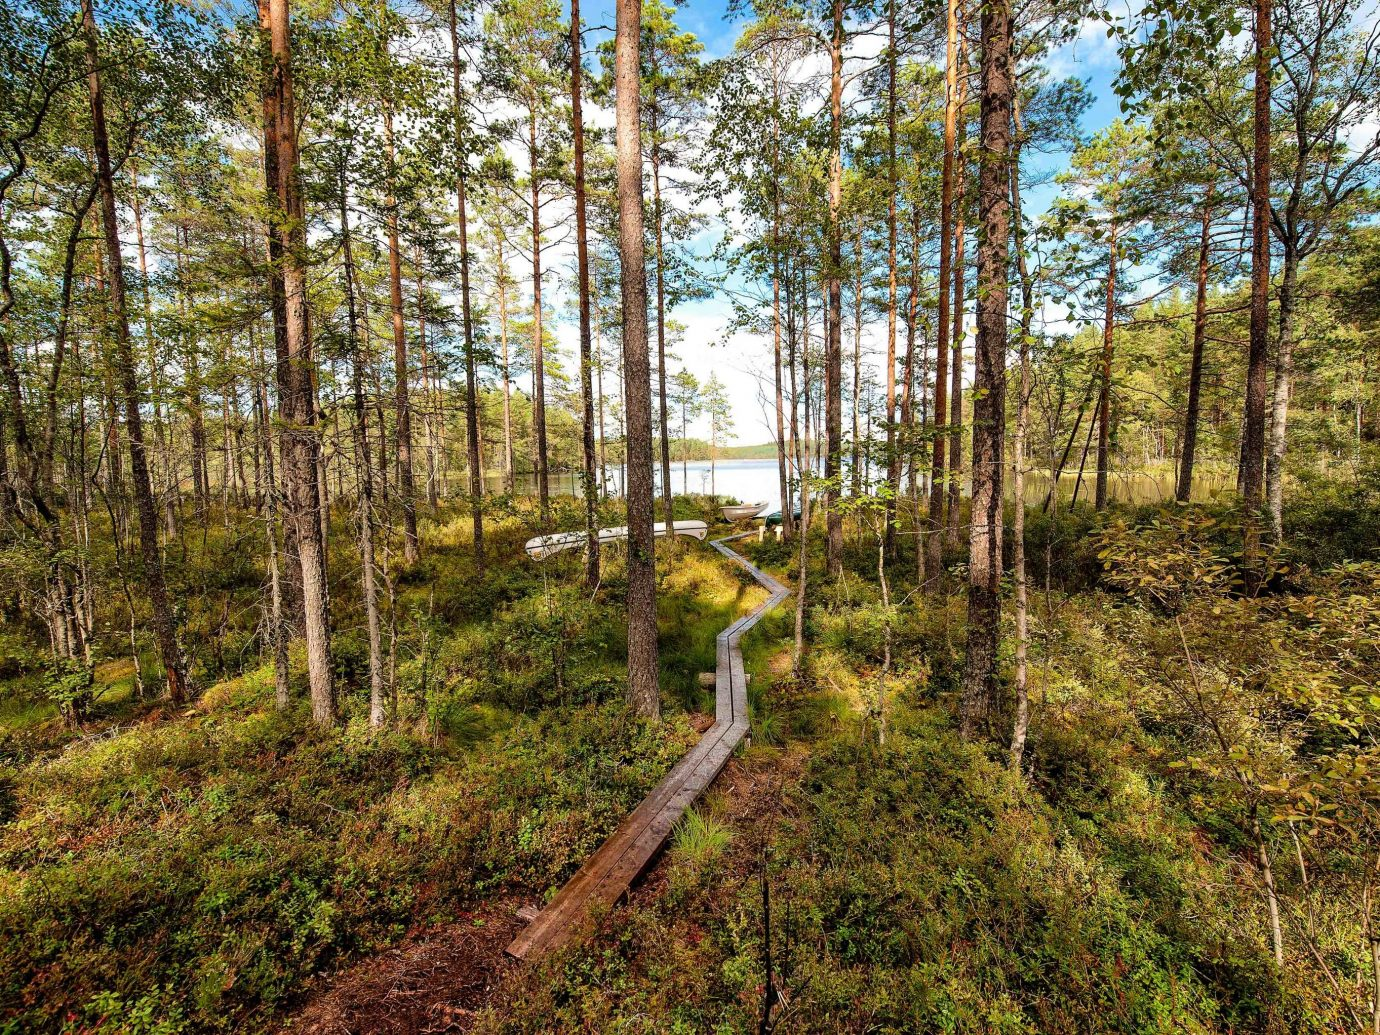 Boutique Hotels Sweden grass tree outdoor ecosystem path Forest nature reserve wilderness woodland vegetation plant old growth forest spruce fir forest temperate broadleaf and mixed forest trail wood biome temperate coniferous forest green wooded valdivian temperate rain forest wetland Jungle shrubland landscape tropical and subtropical coniferous forests bog plant community state park rainforest area lush